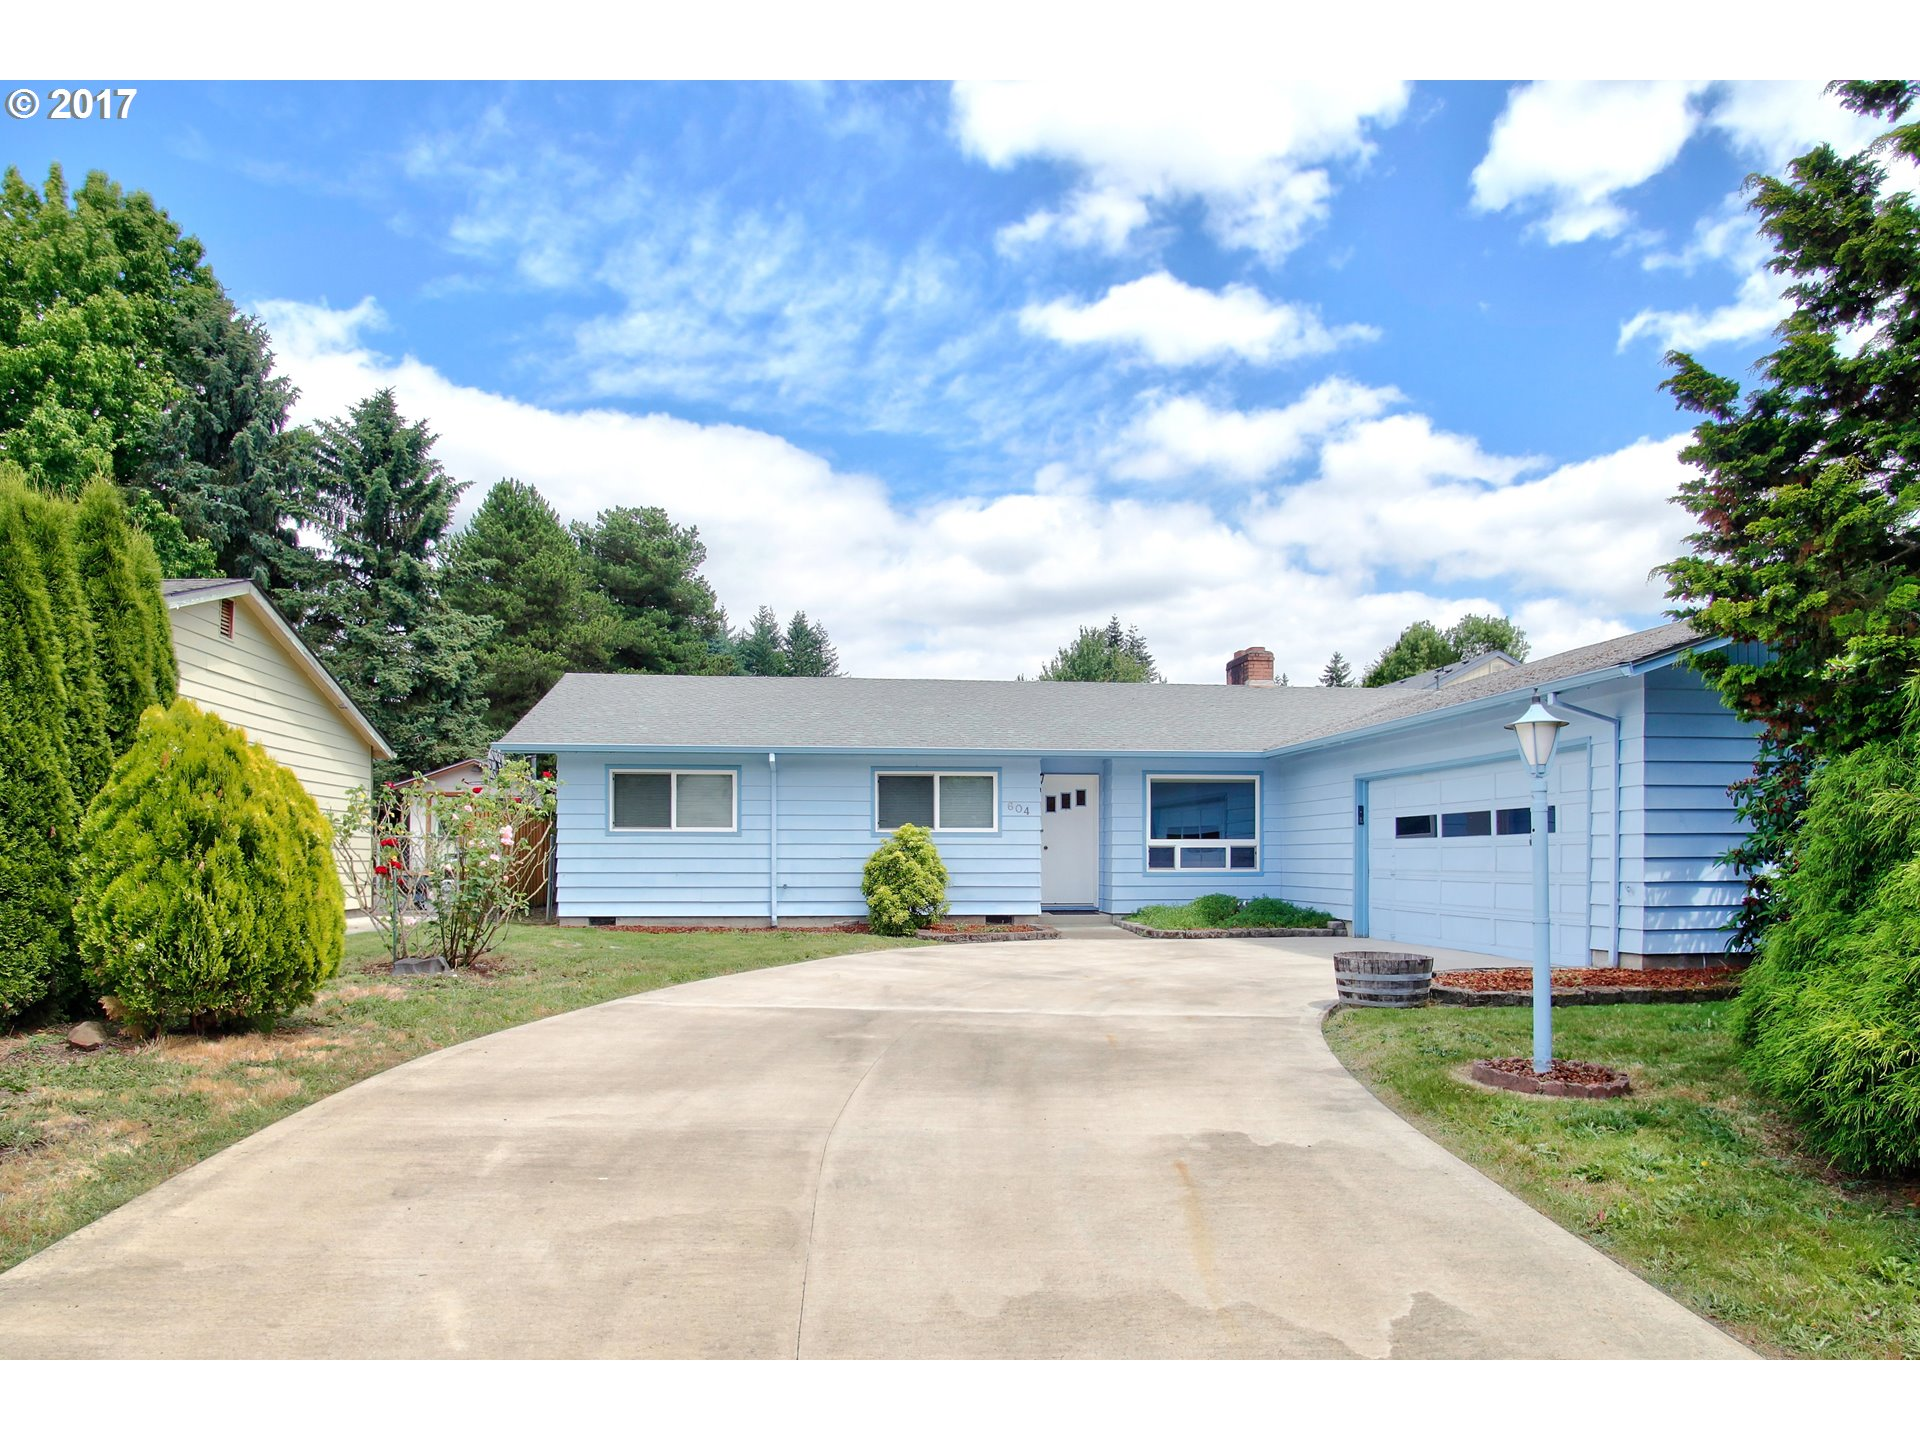 homes for sale real estate property for sale newberg